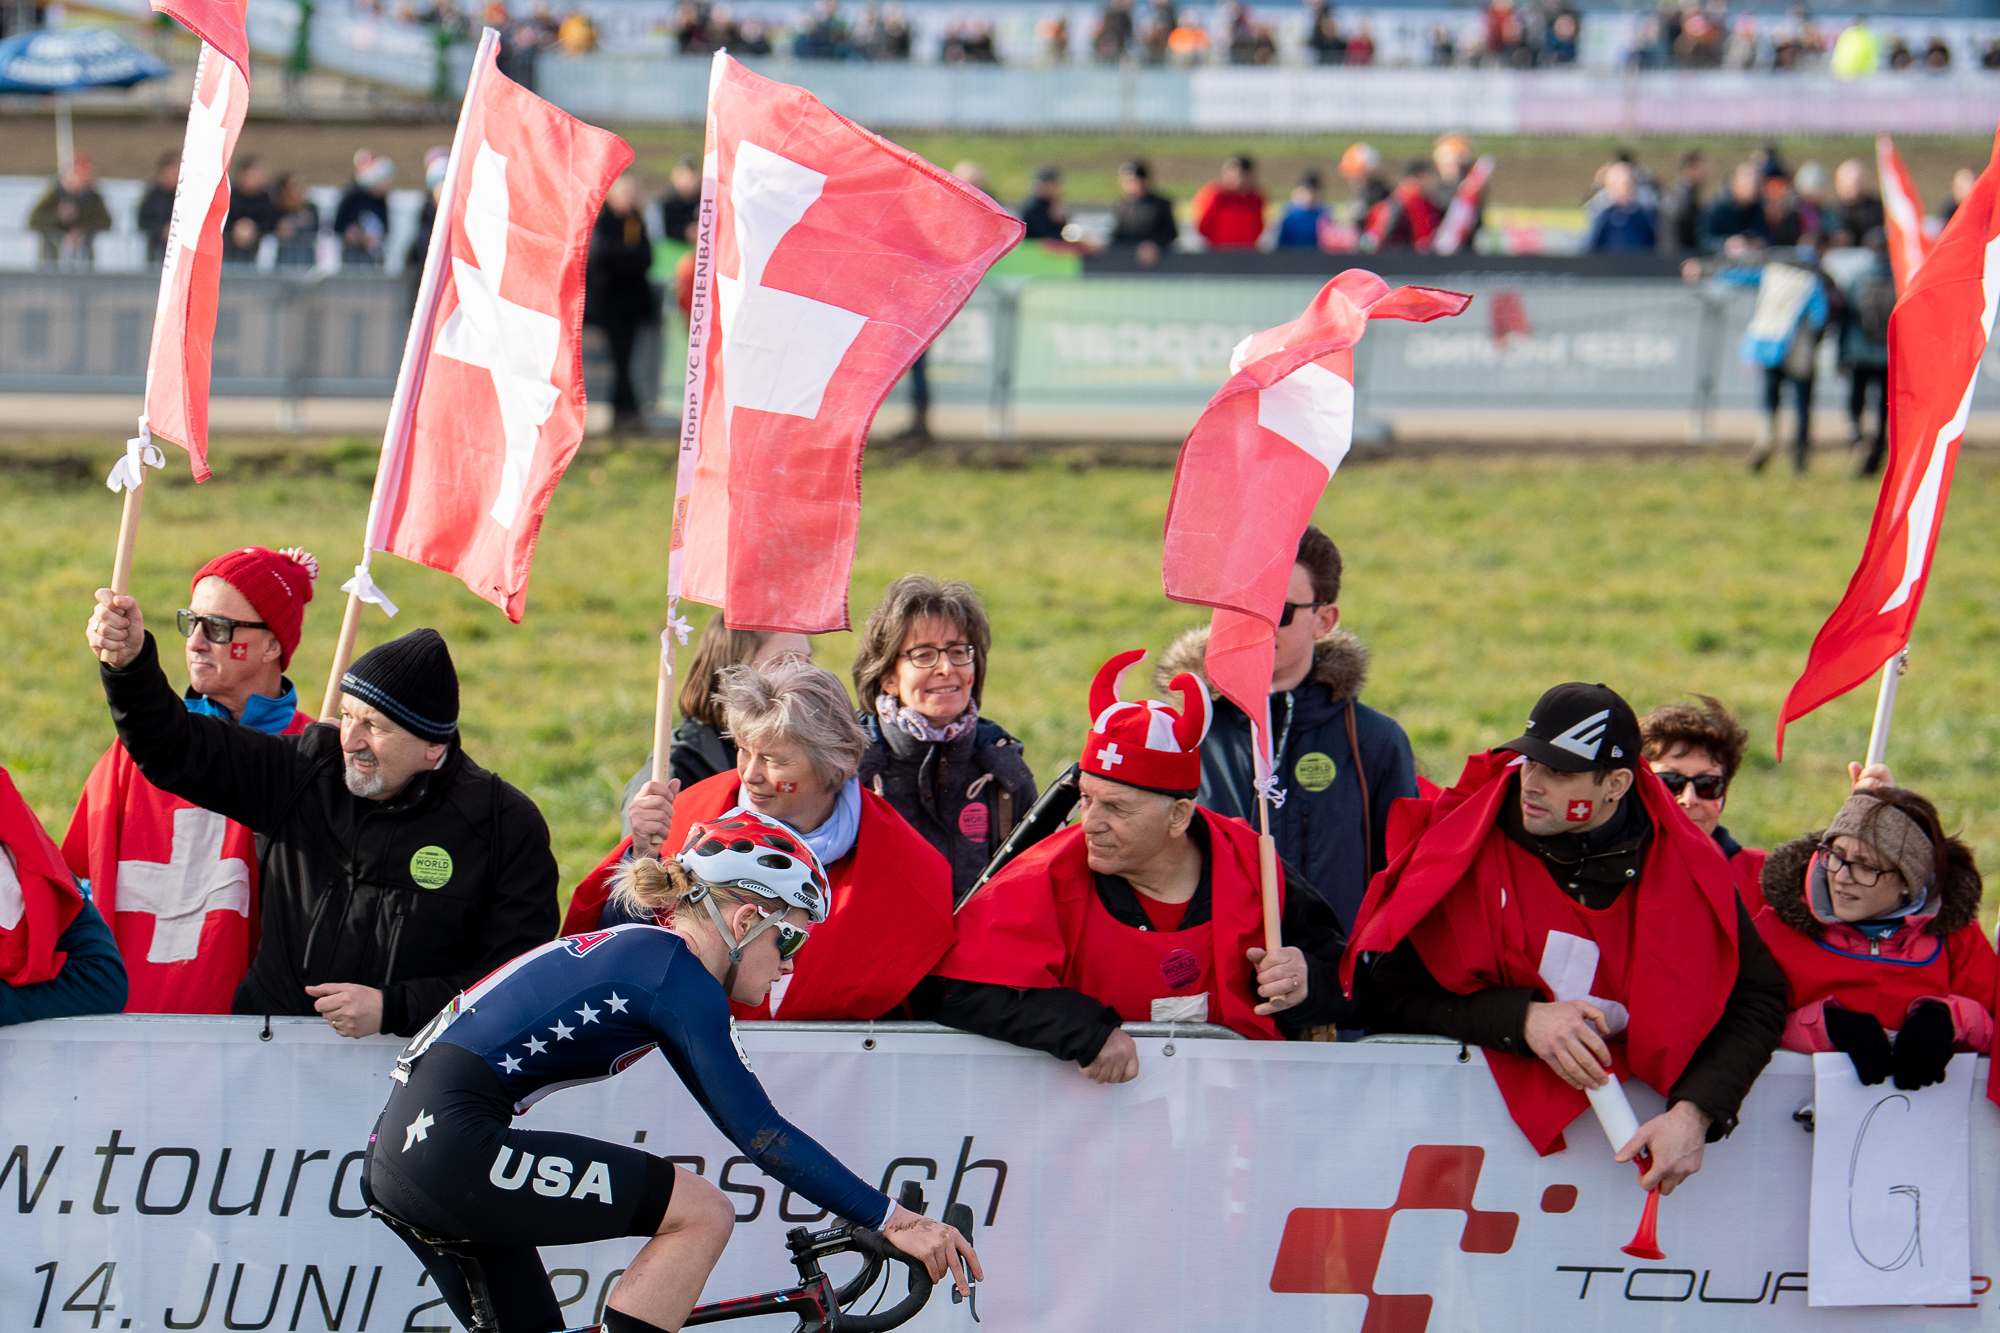 Cassidy Hickey rides by a group of Swiss fans at the UCI Cyclocross World Championships